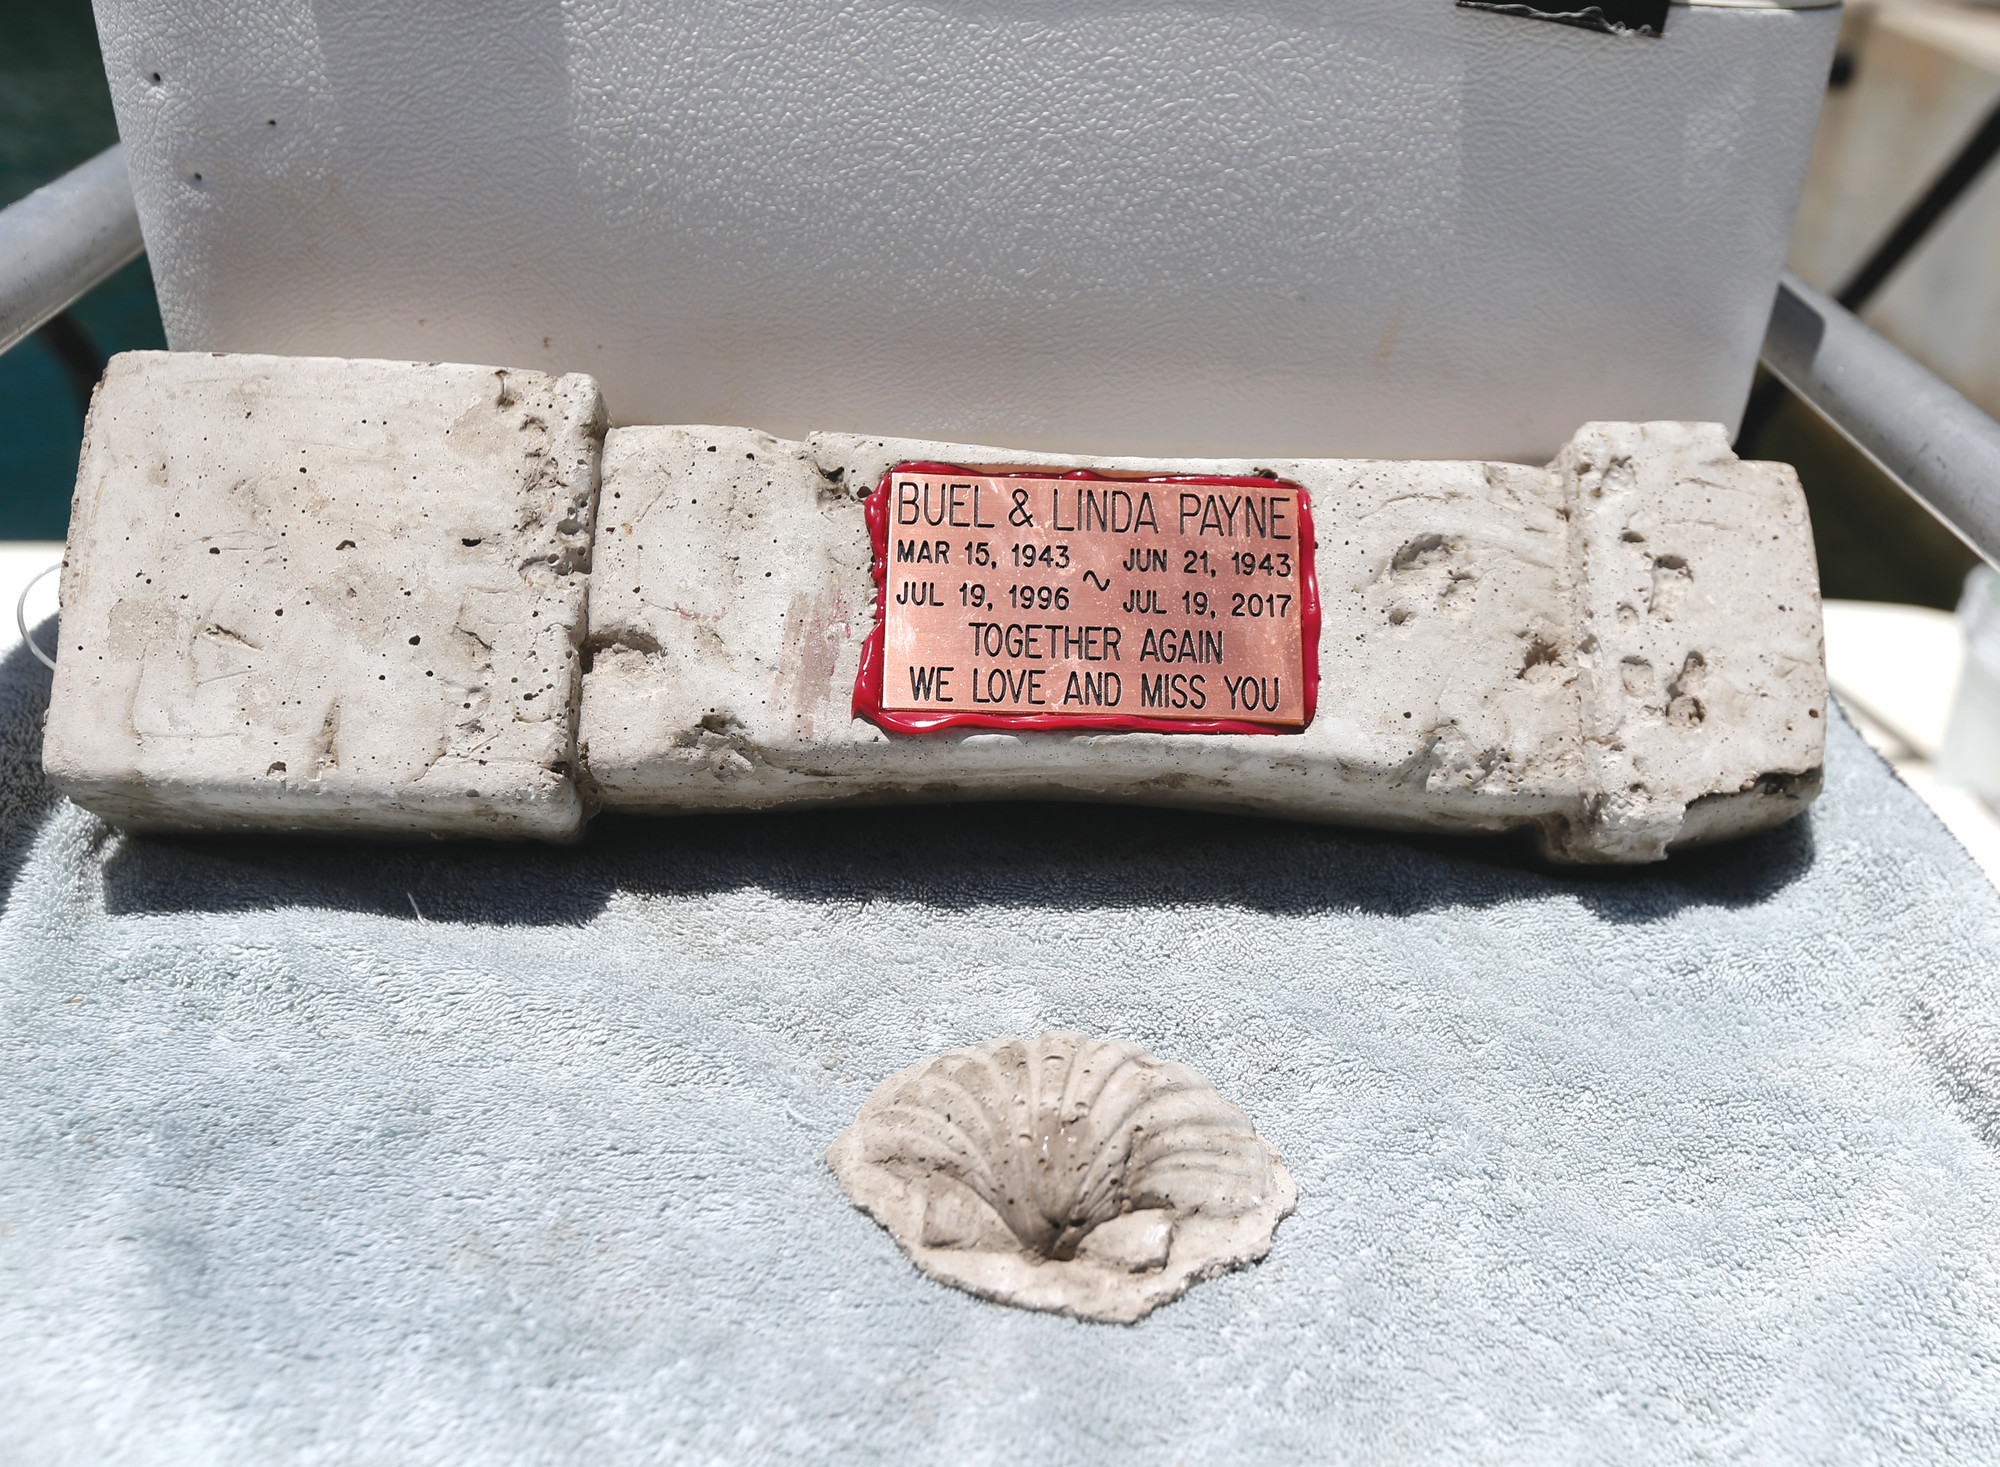 A memorial plaque for Buel and Linda Payne, affixed to a cement baluster mixed with their ashes, is displayed near Miami Beach.